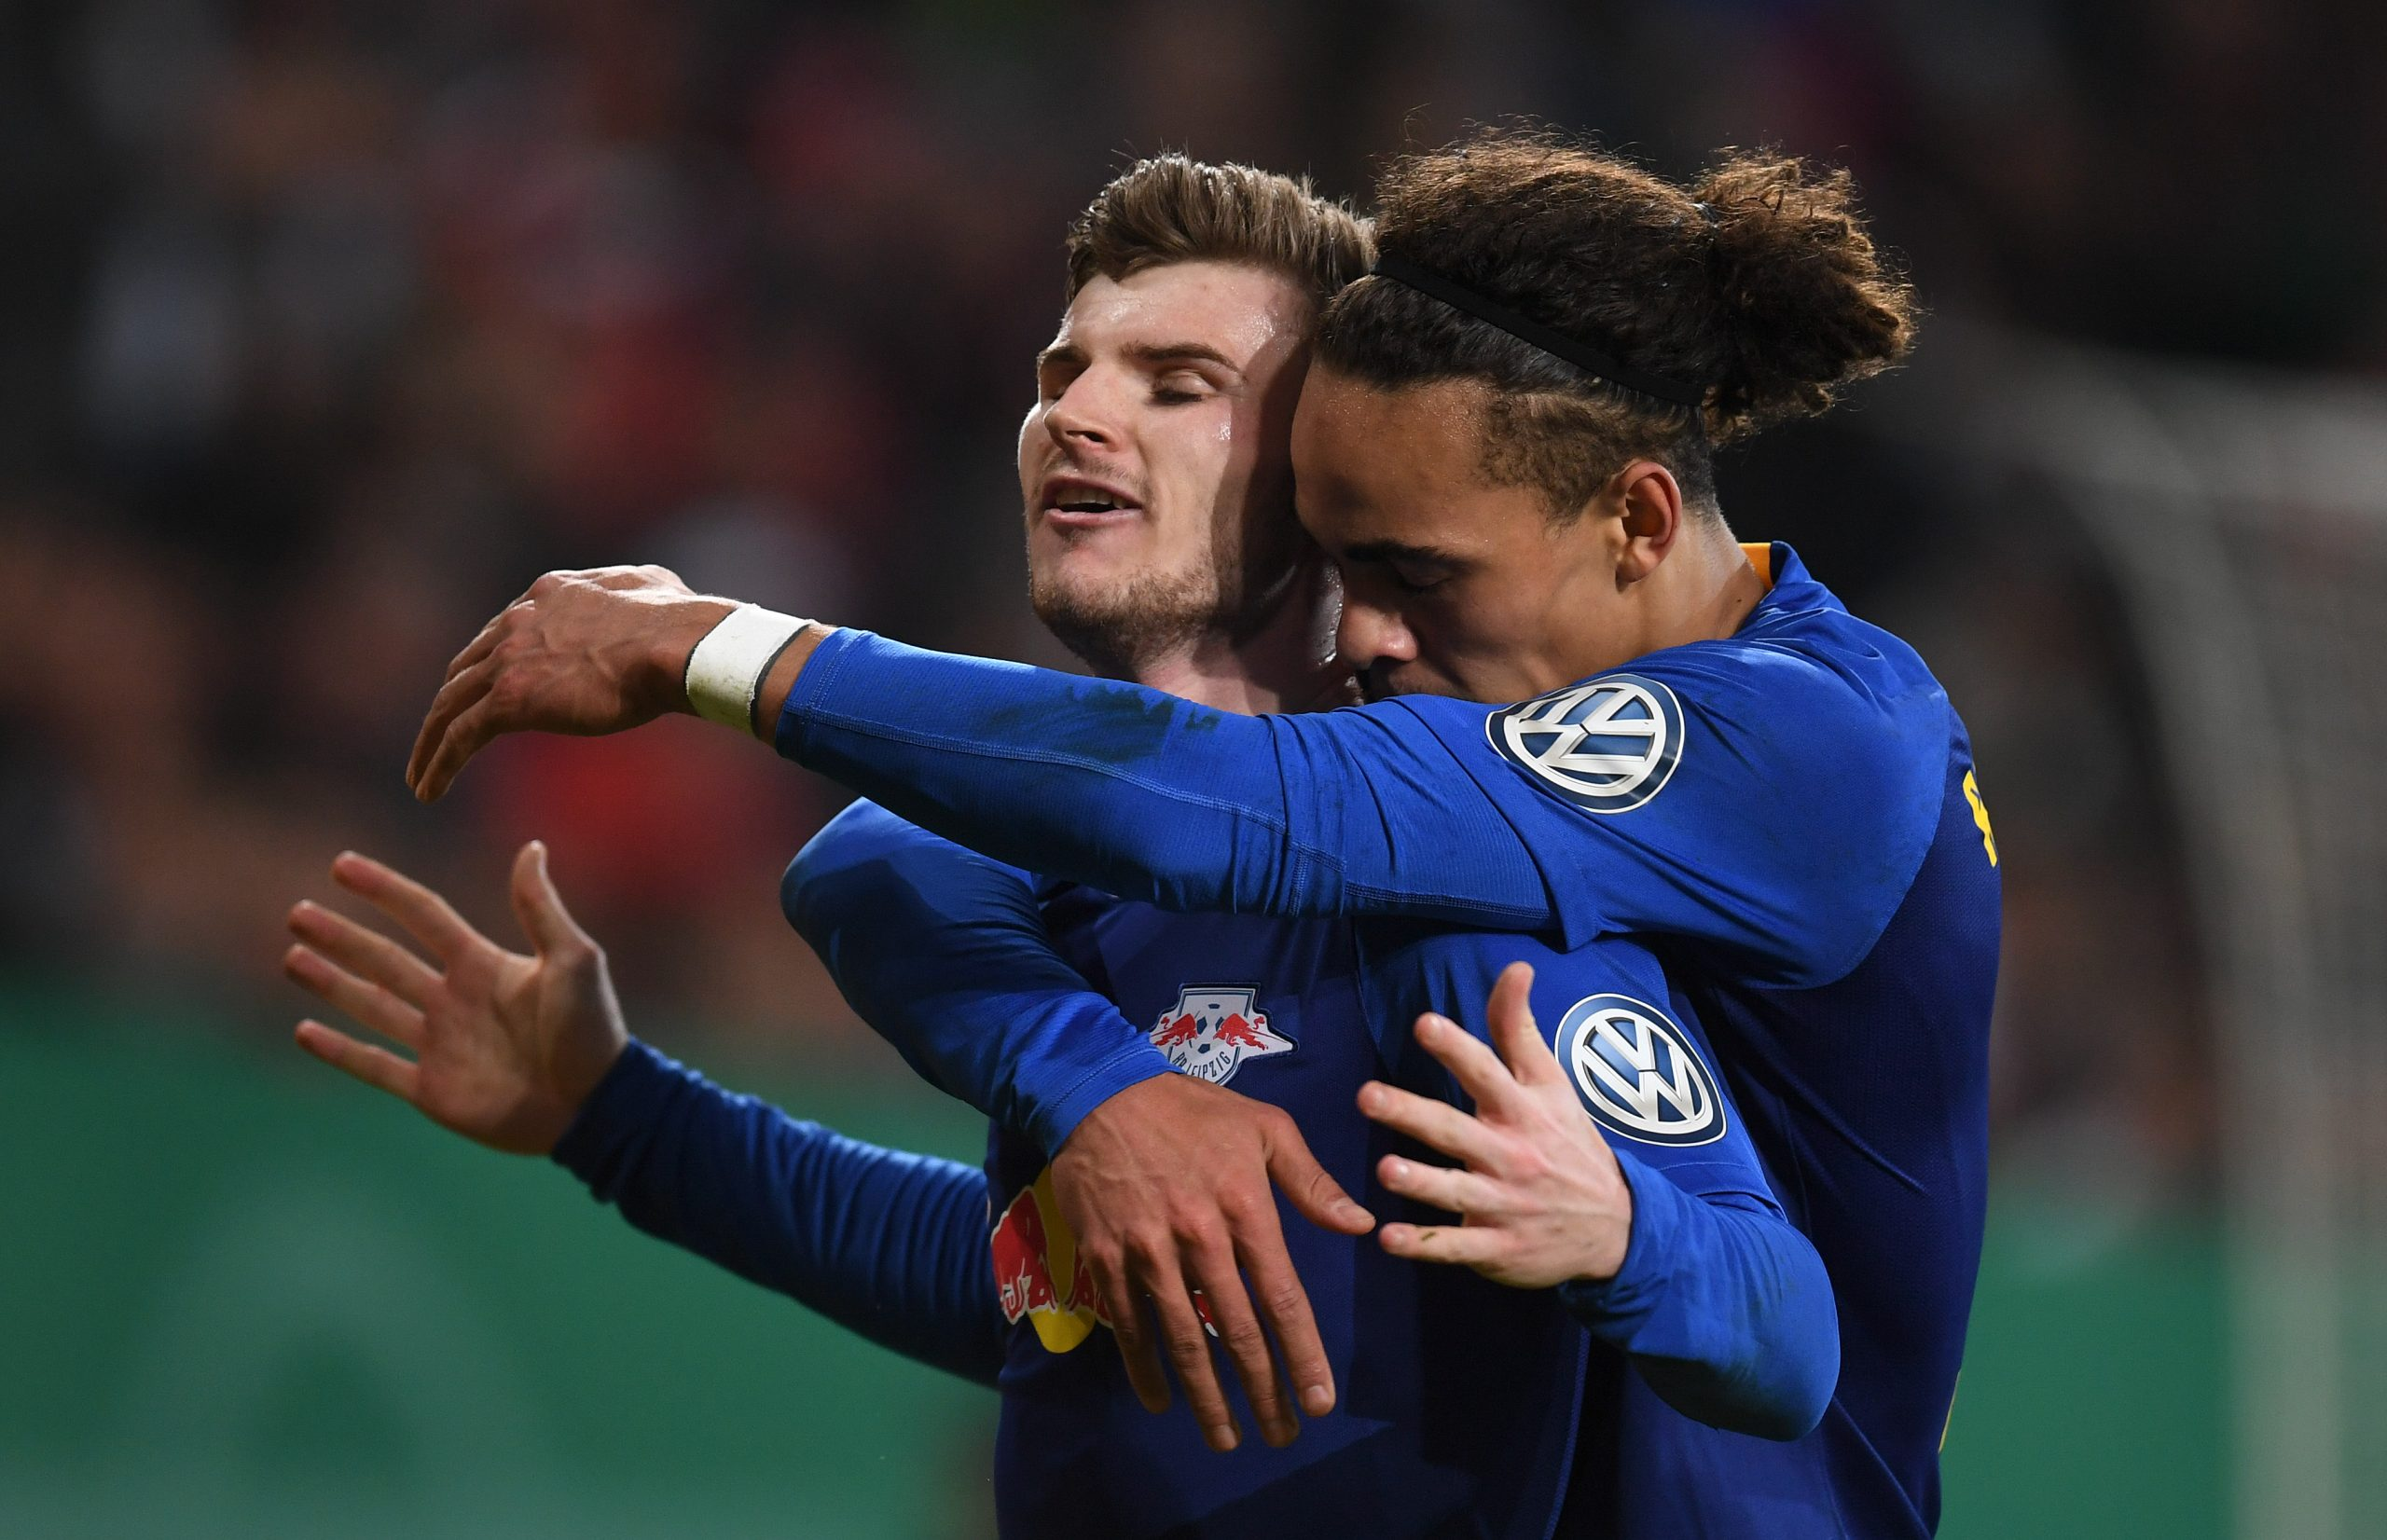 Yussuf Poulsen can get the best out of Chelsea striker Timo Werner, says Tony Cascarino.